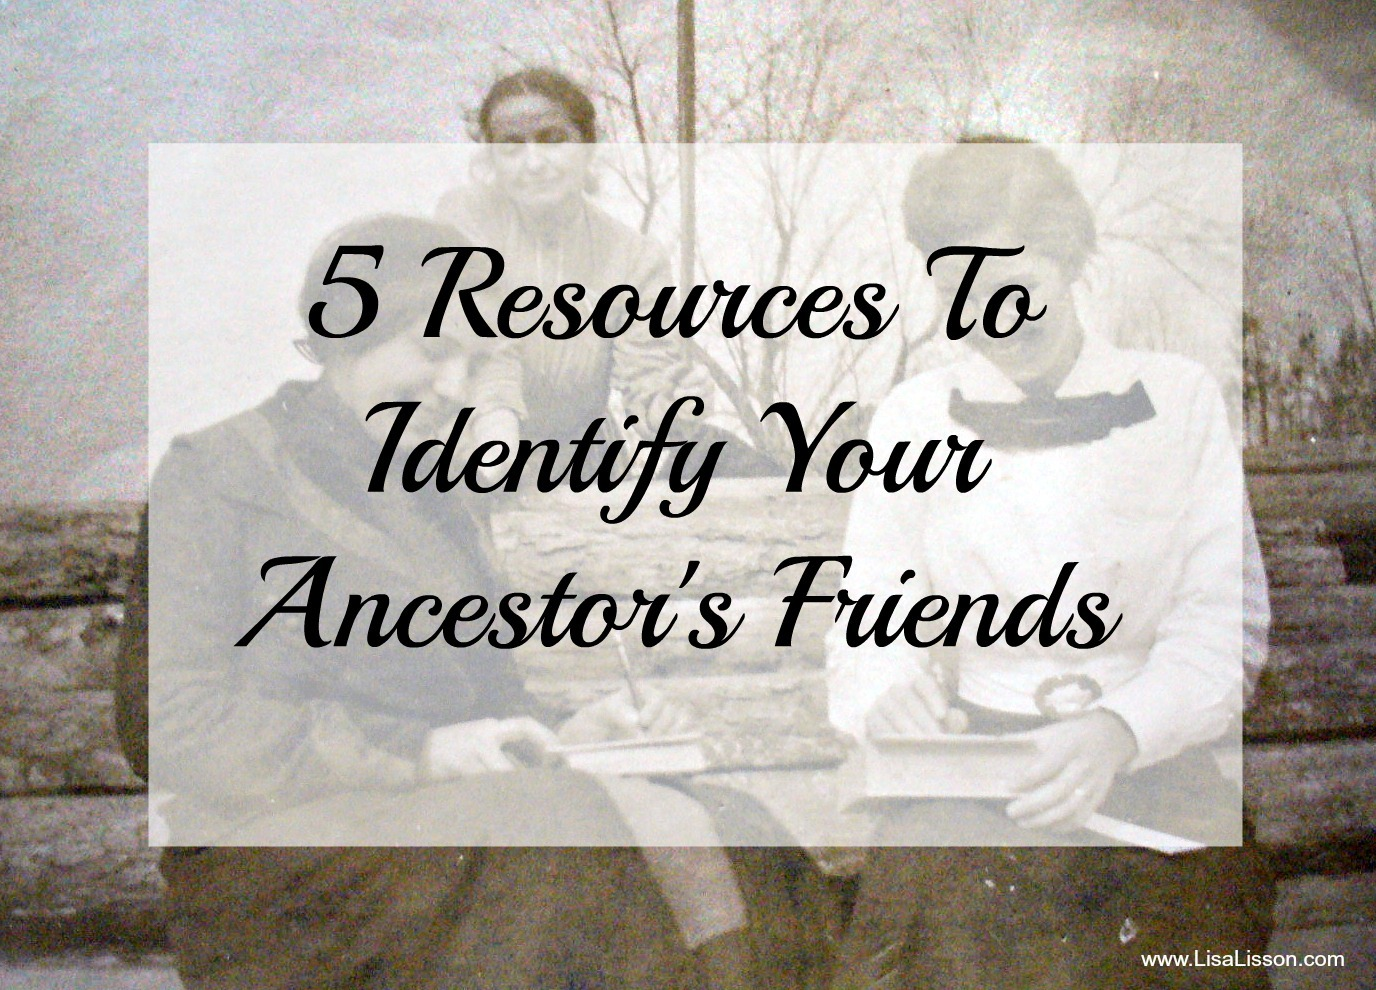 5 Resources To Identify Your Ancestor's Friends